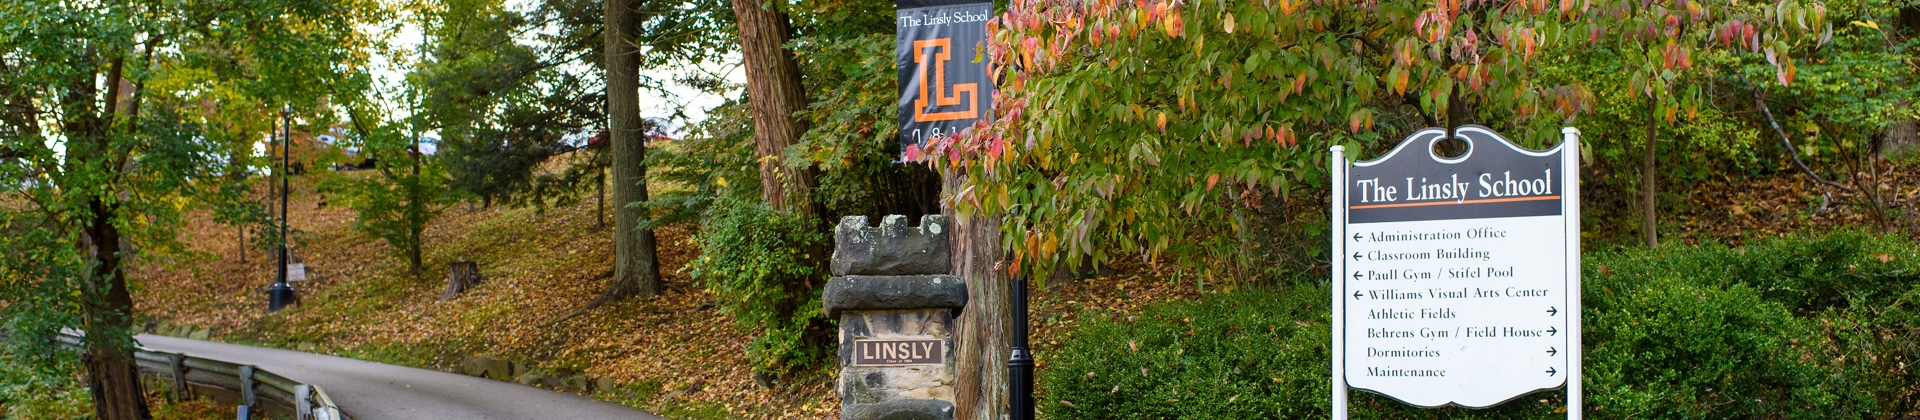 The Linsly School banner